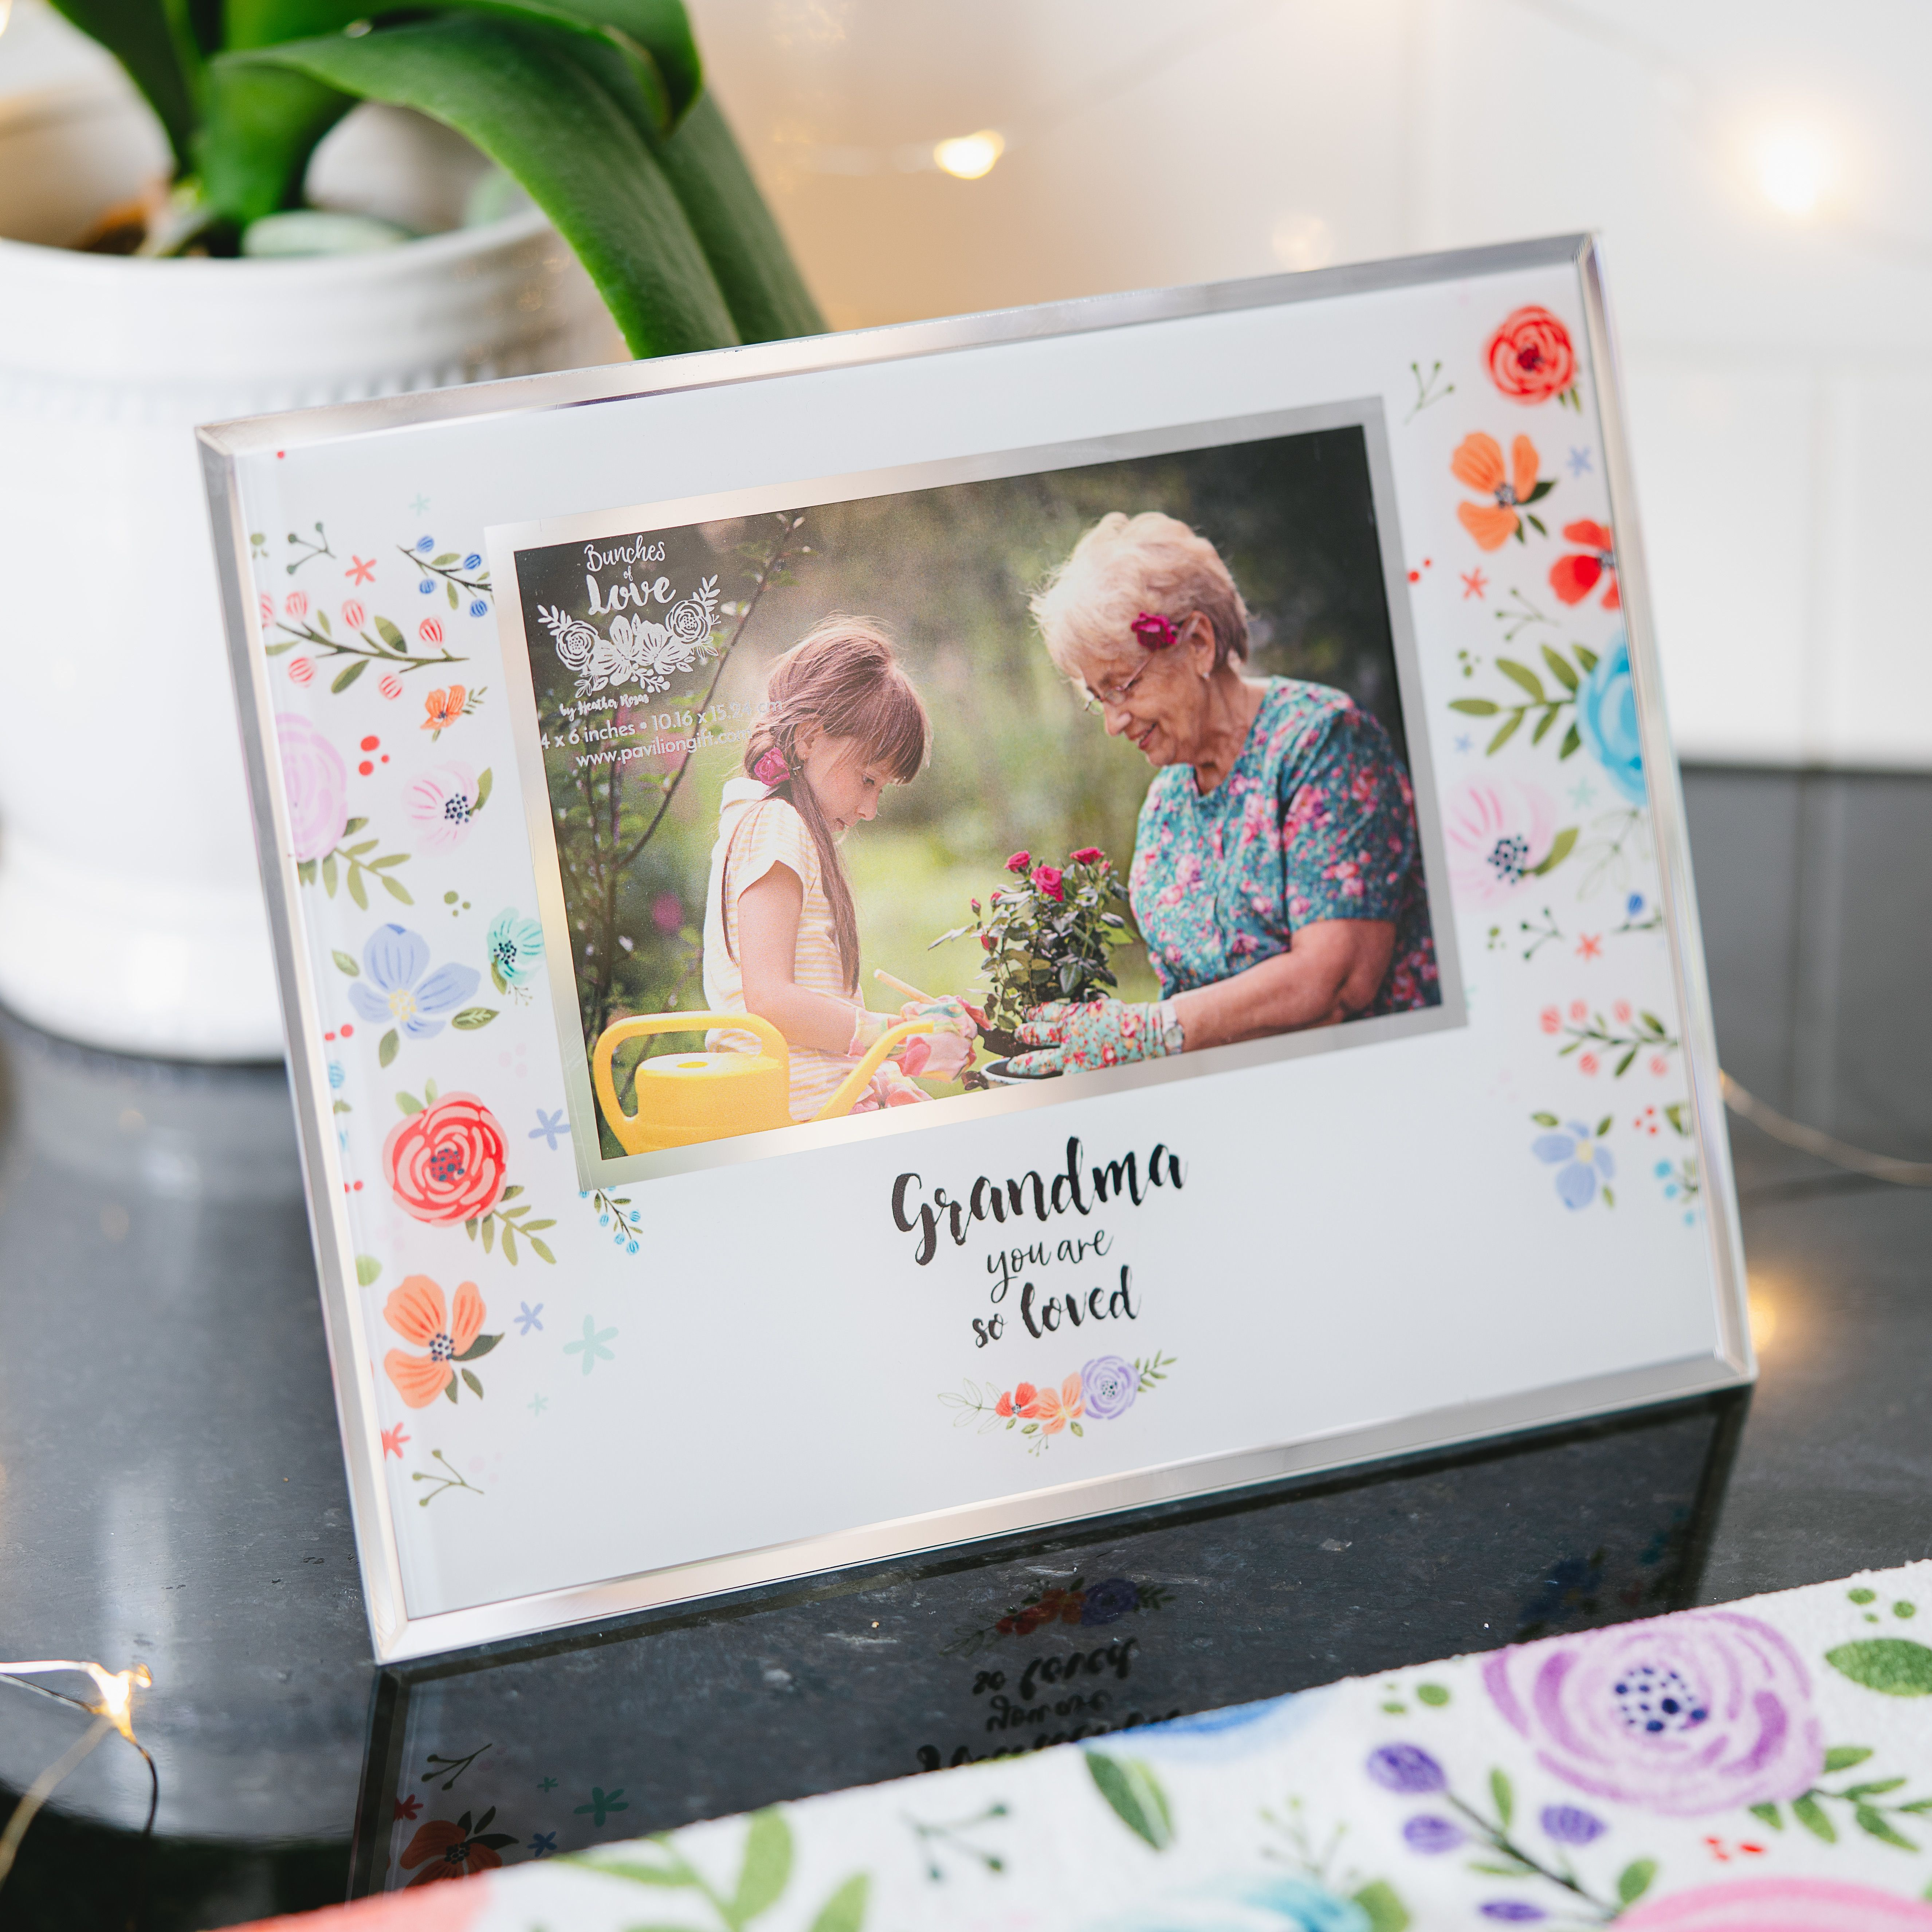 Grandma 9 25 X 7 25 Frame Holds 6 X 4 Photo In 2020 Frame Photo Picture Frames Picture Frames